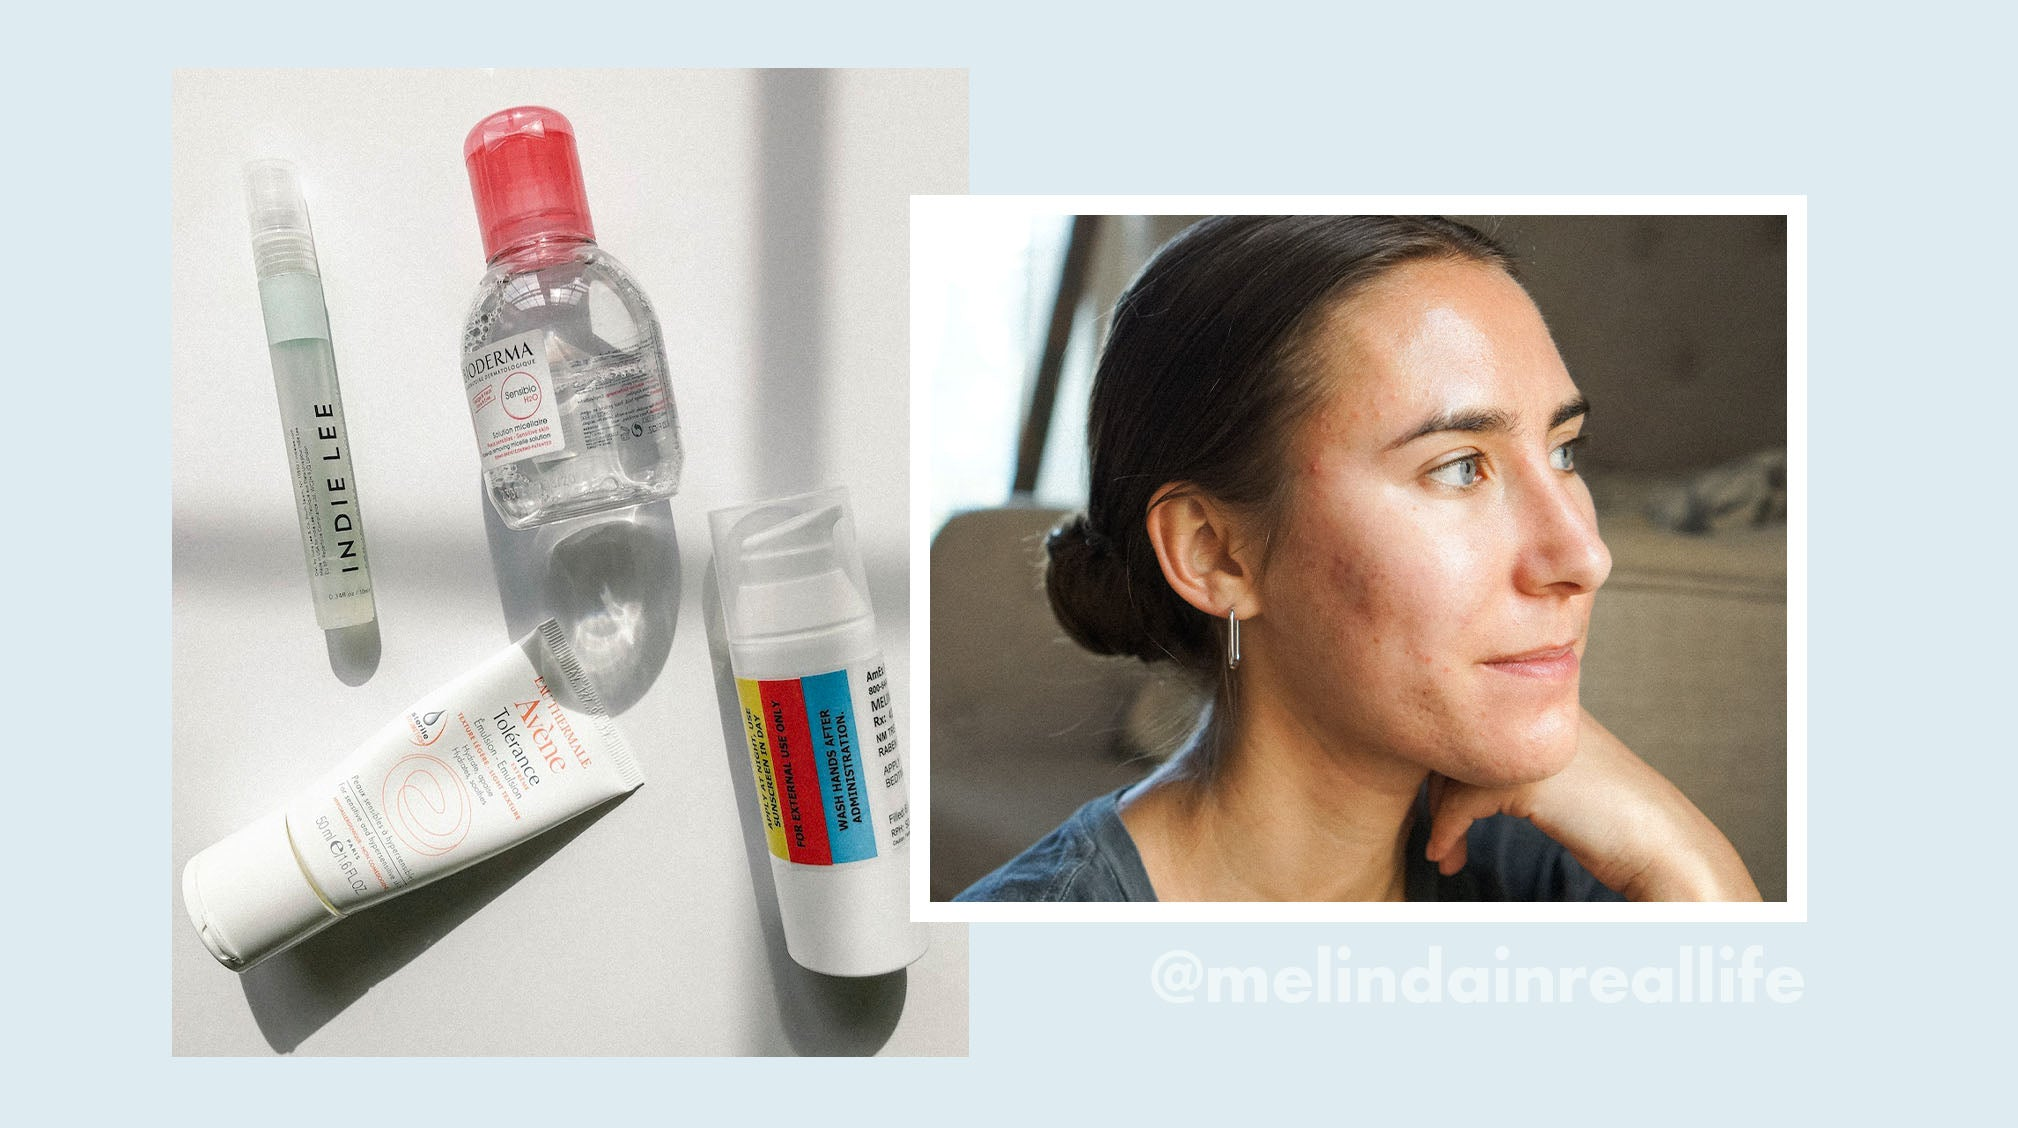 Acne Influencer Melinda Renzoni Shares the Ups and Downs of Her Acne Journey